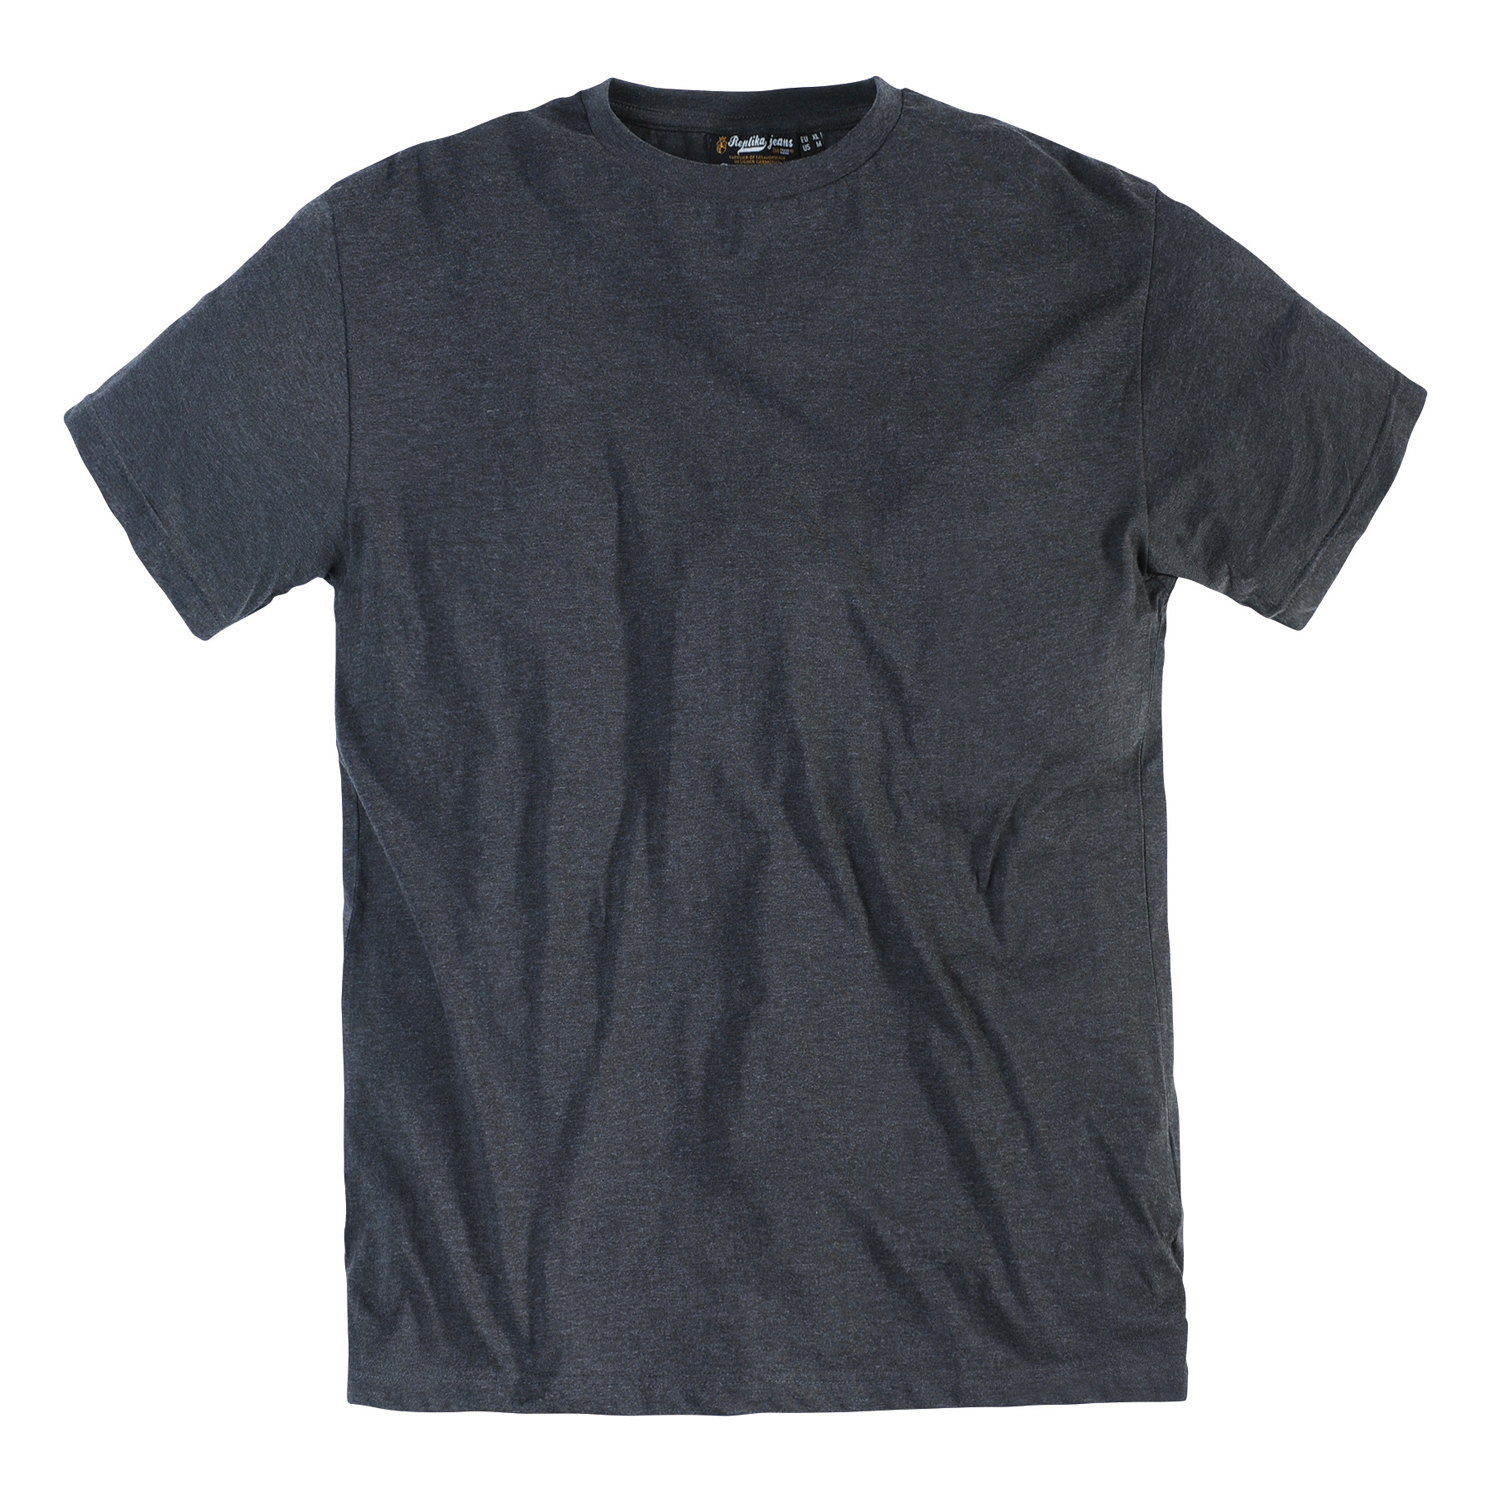 Detail Image to T-Shirt in dark grey melange by Replika in oversizes up to 8XL // double pack